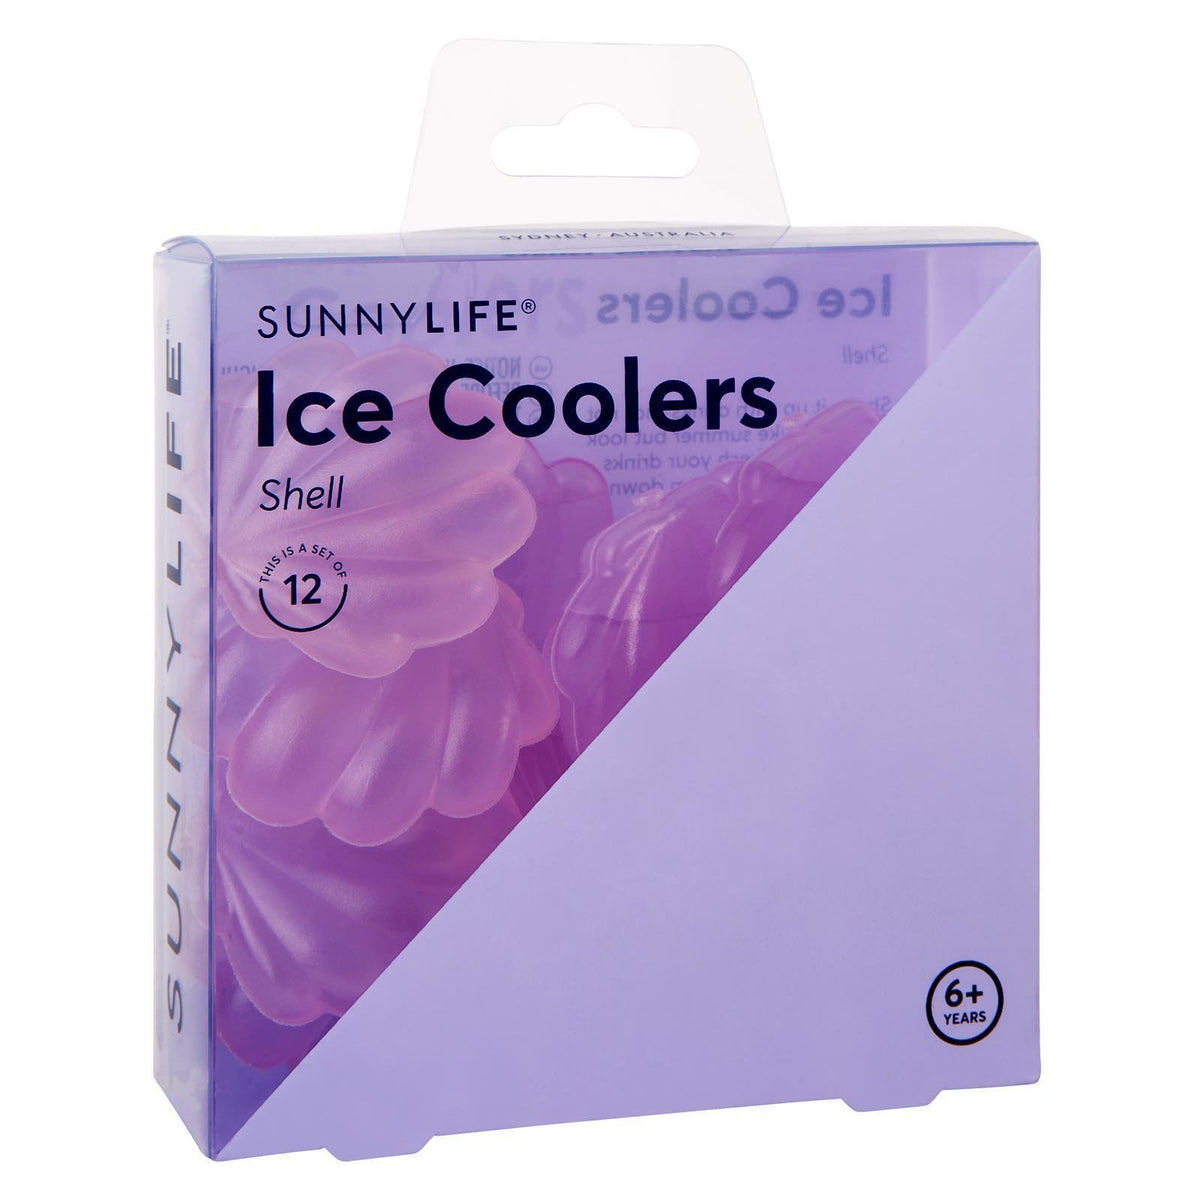 Sunnylife | Ice Coolers | Shell